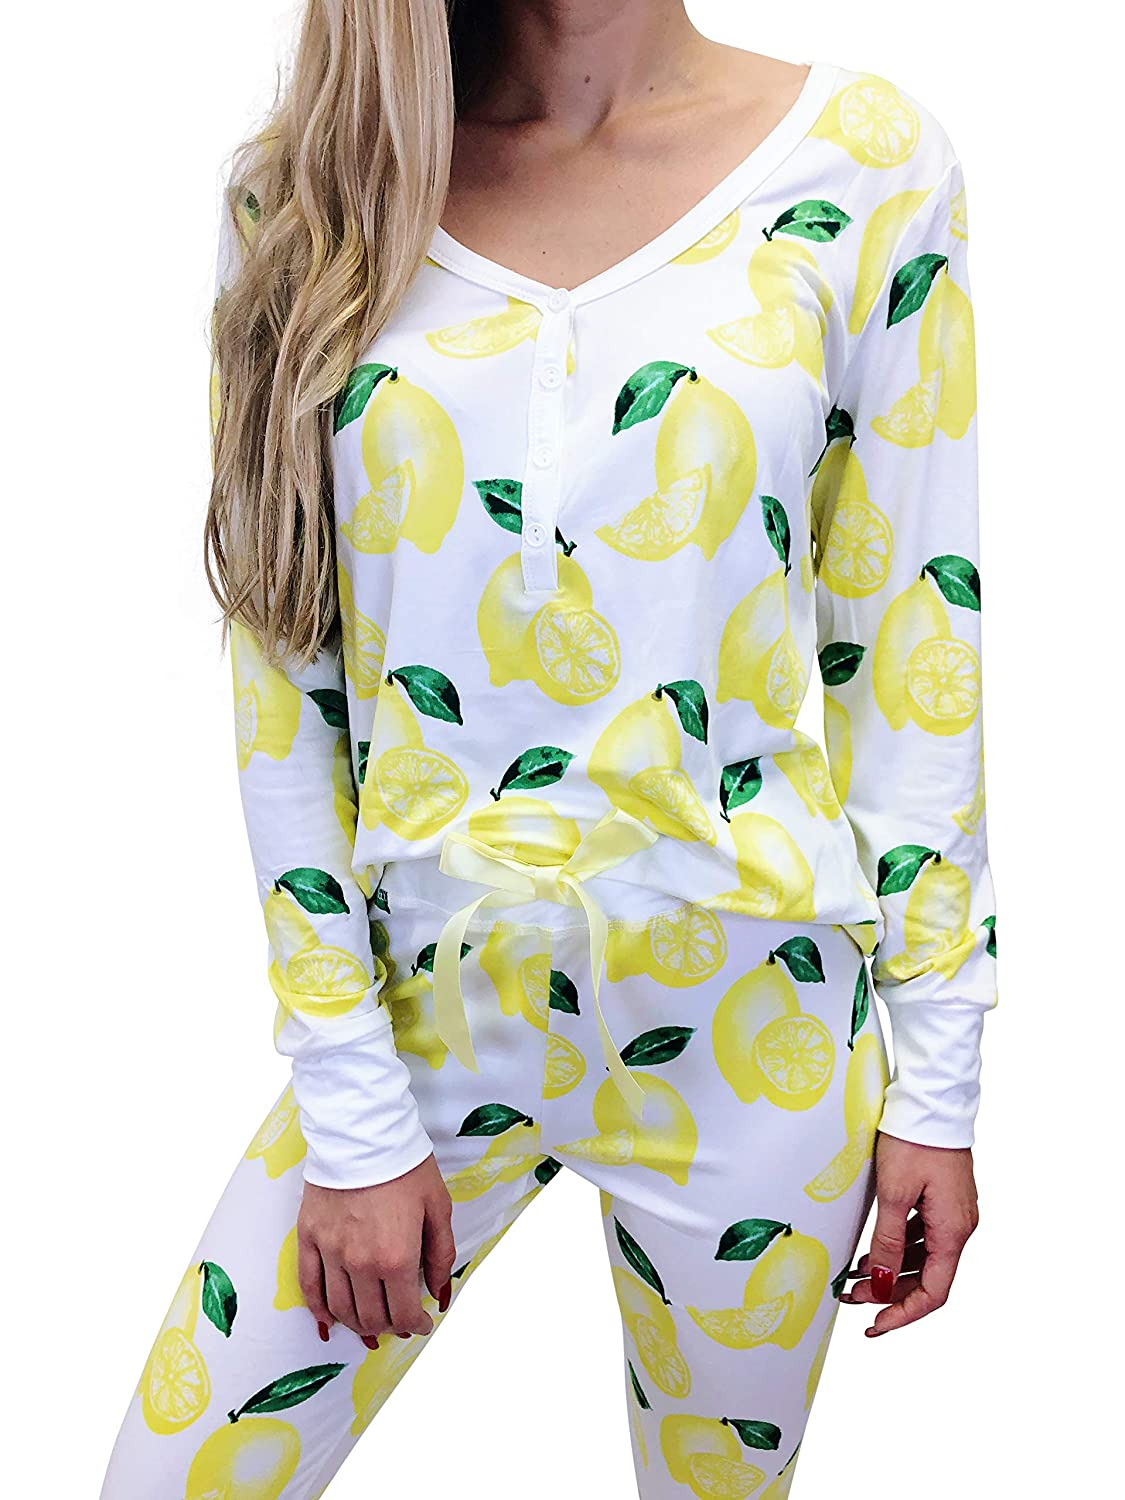 Jordann Jammies Lemon Women's Pajama Set   Super Soft and Slimming